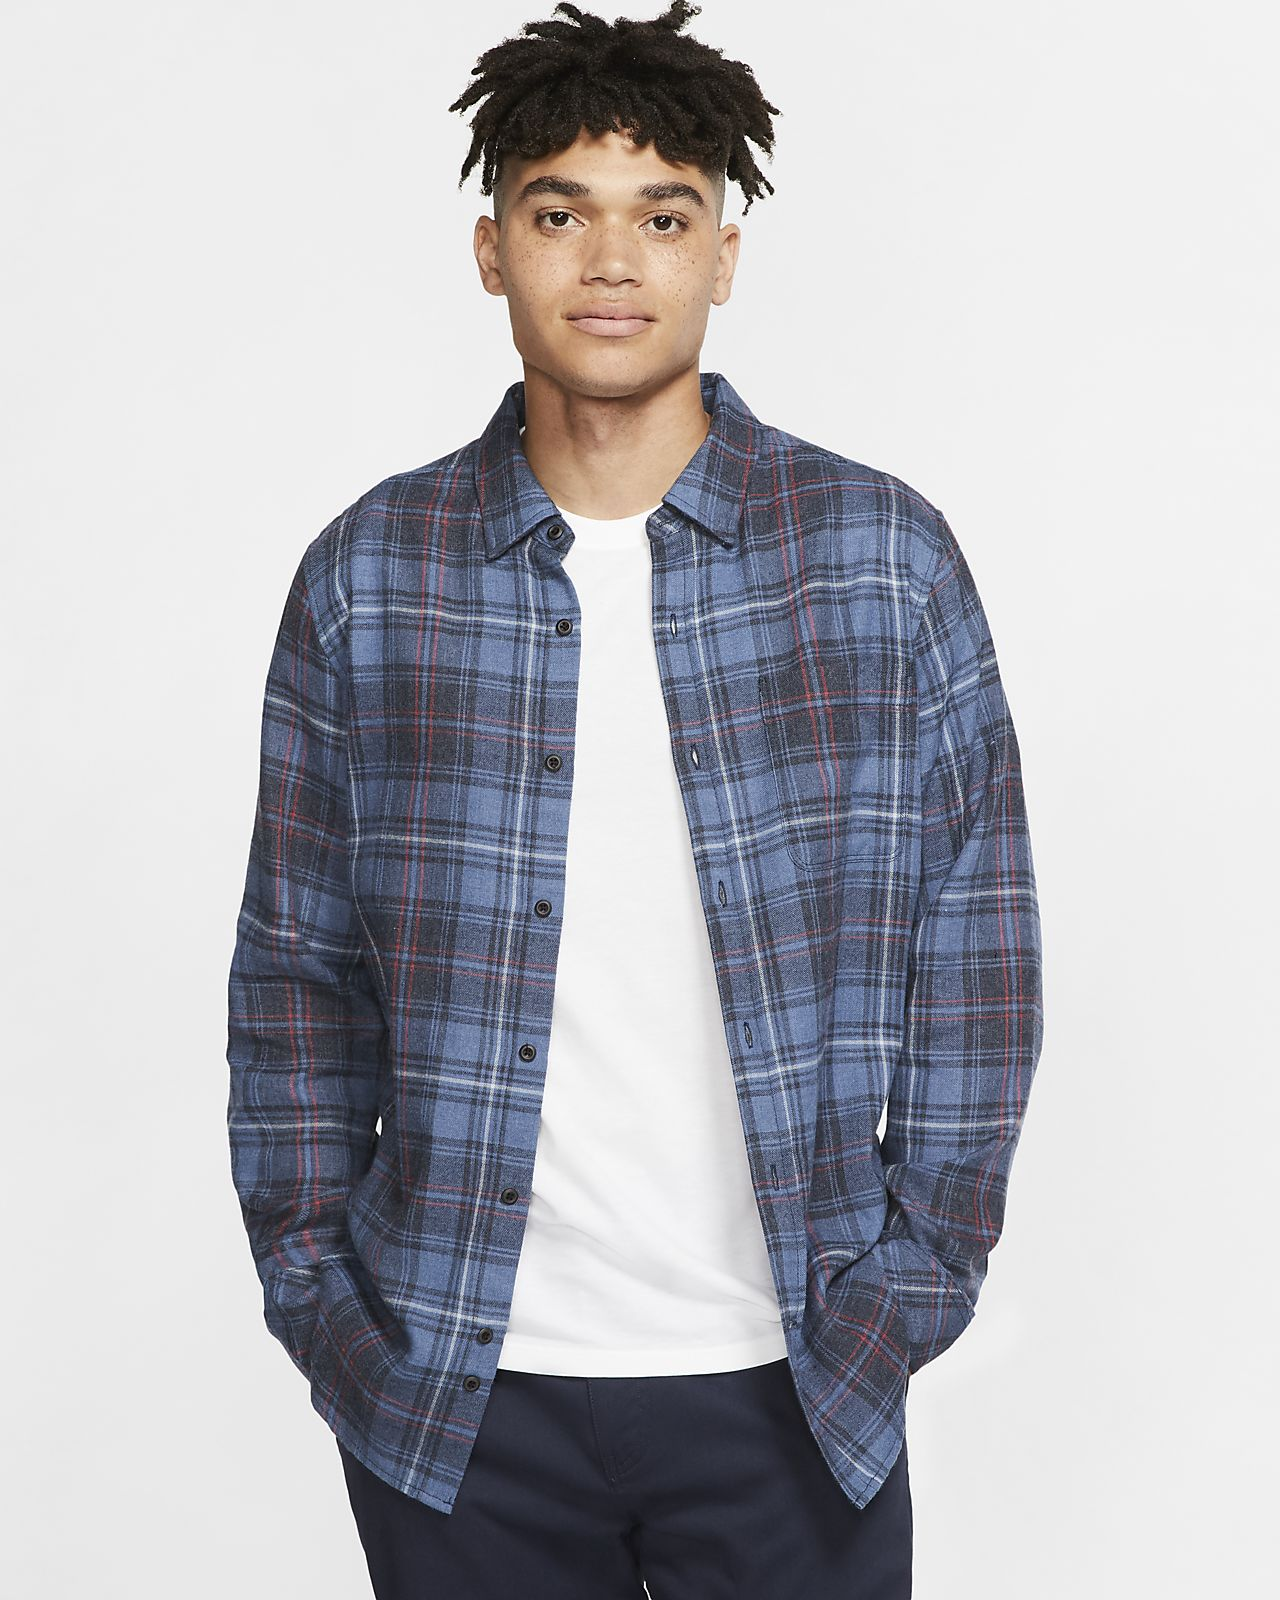 Haut à manches longues Hurley Vedder Washed pour Homme